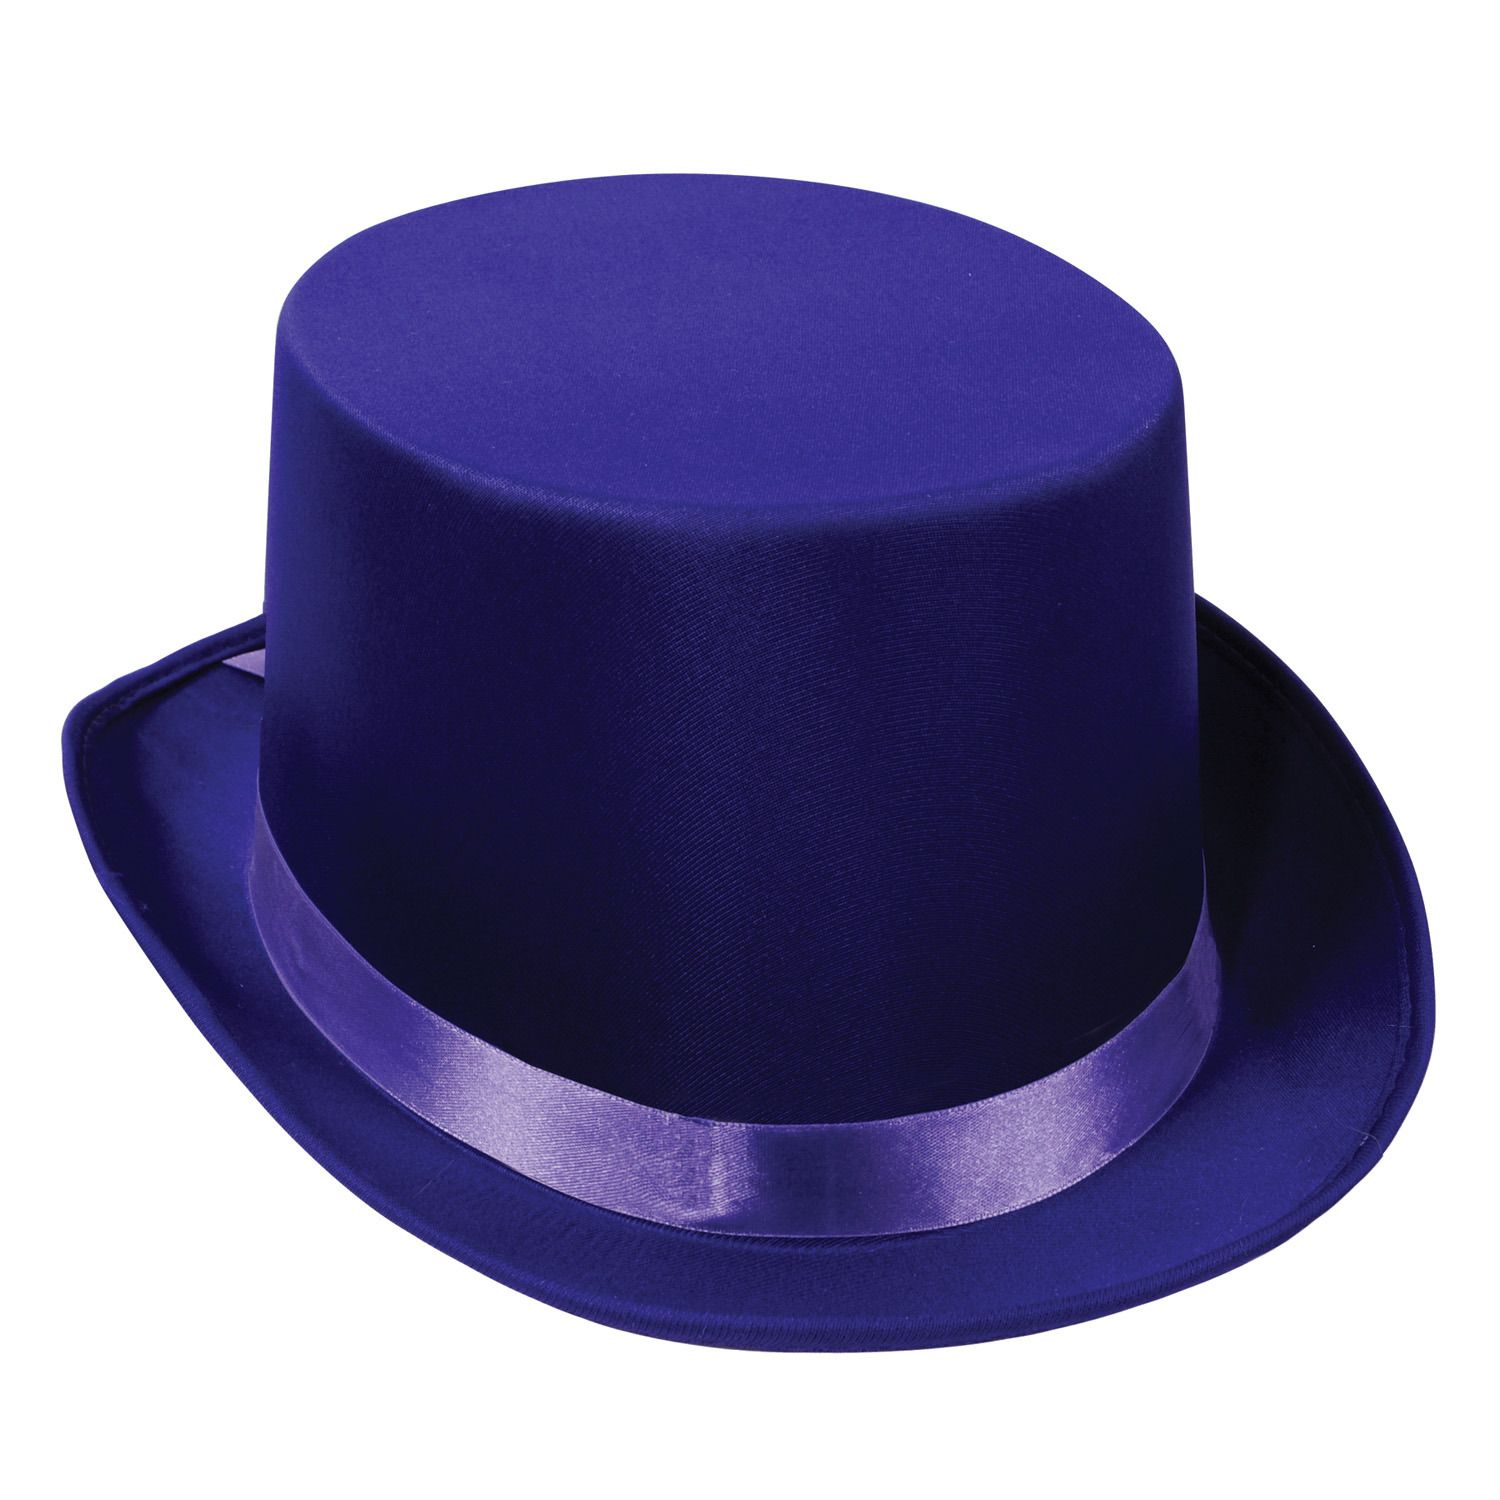 Satin Sleek Top Hat Pack of 6 One size fits most Purple | New Year\'s ...